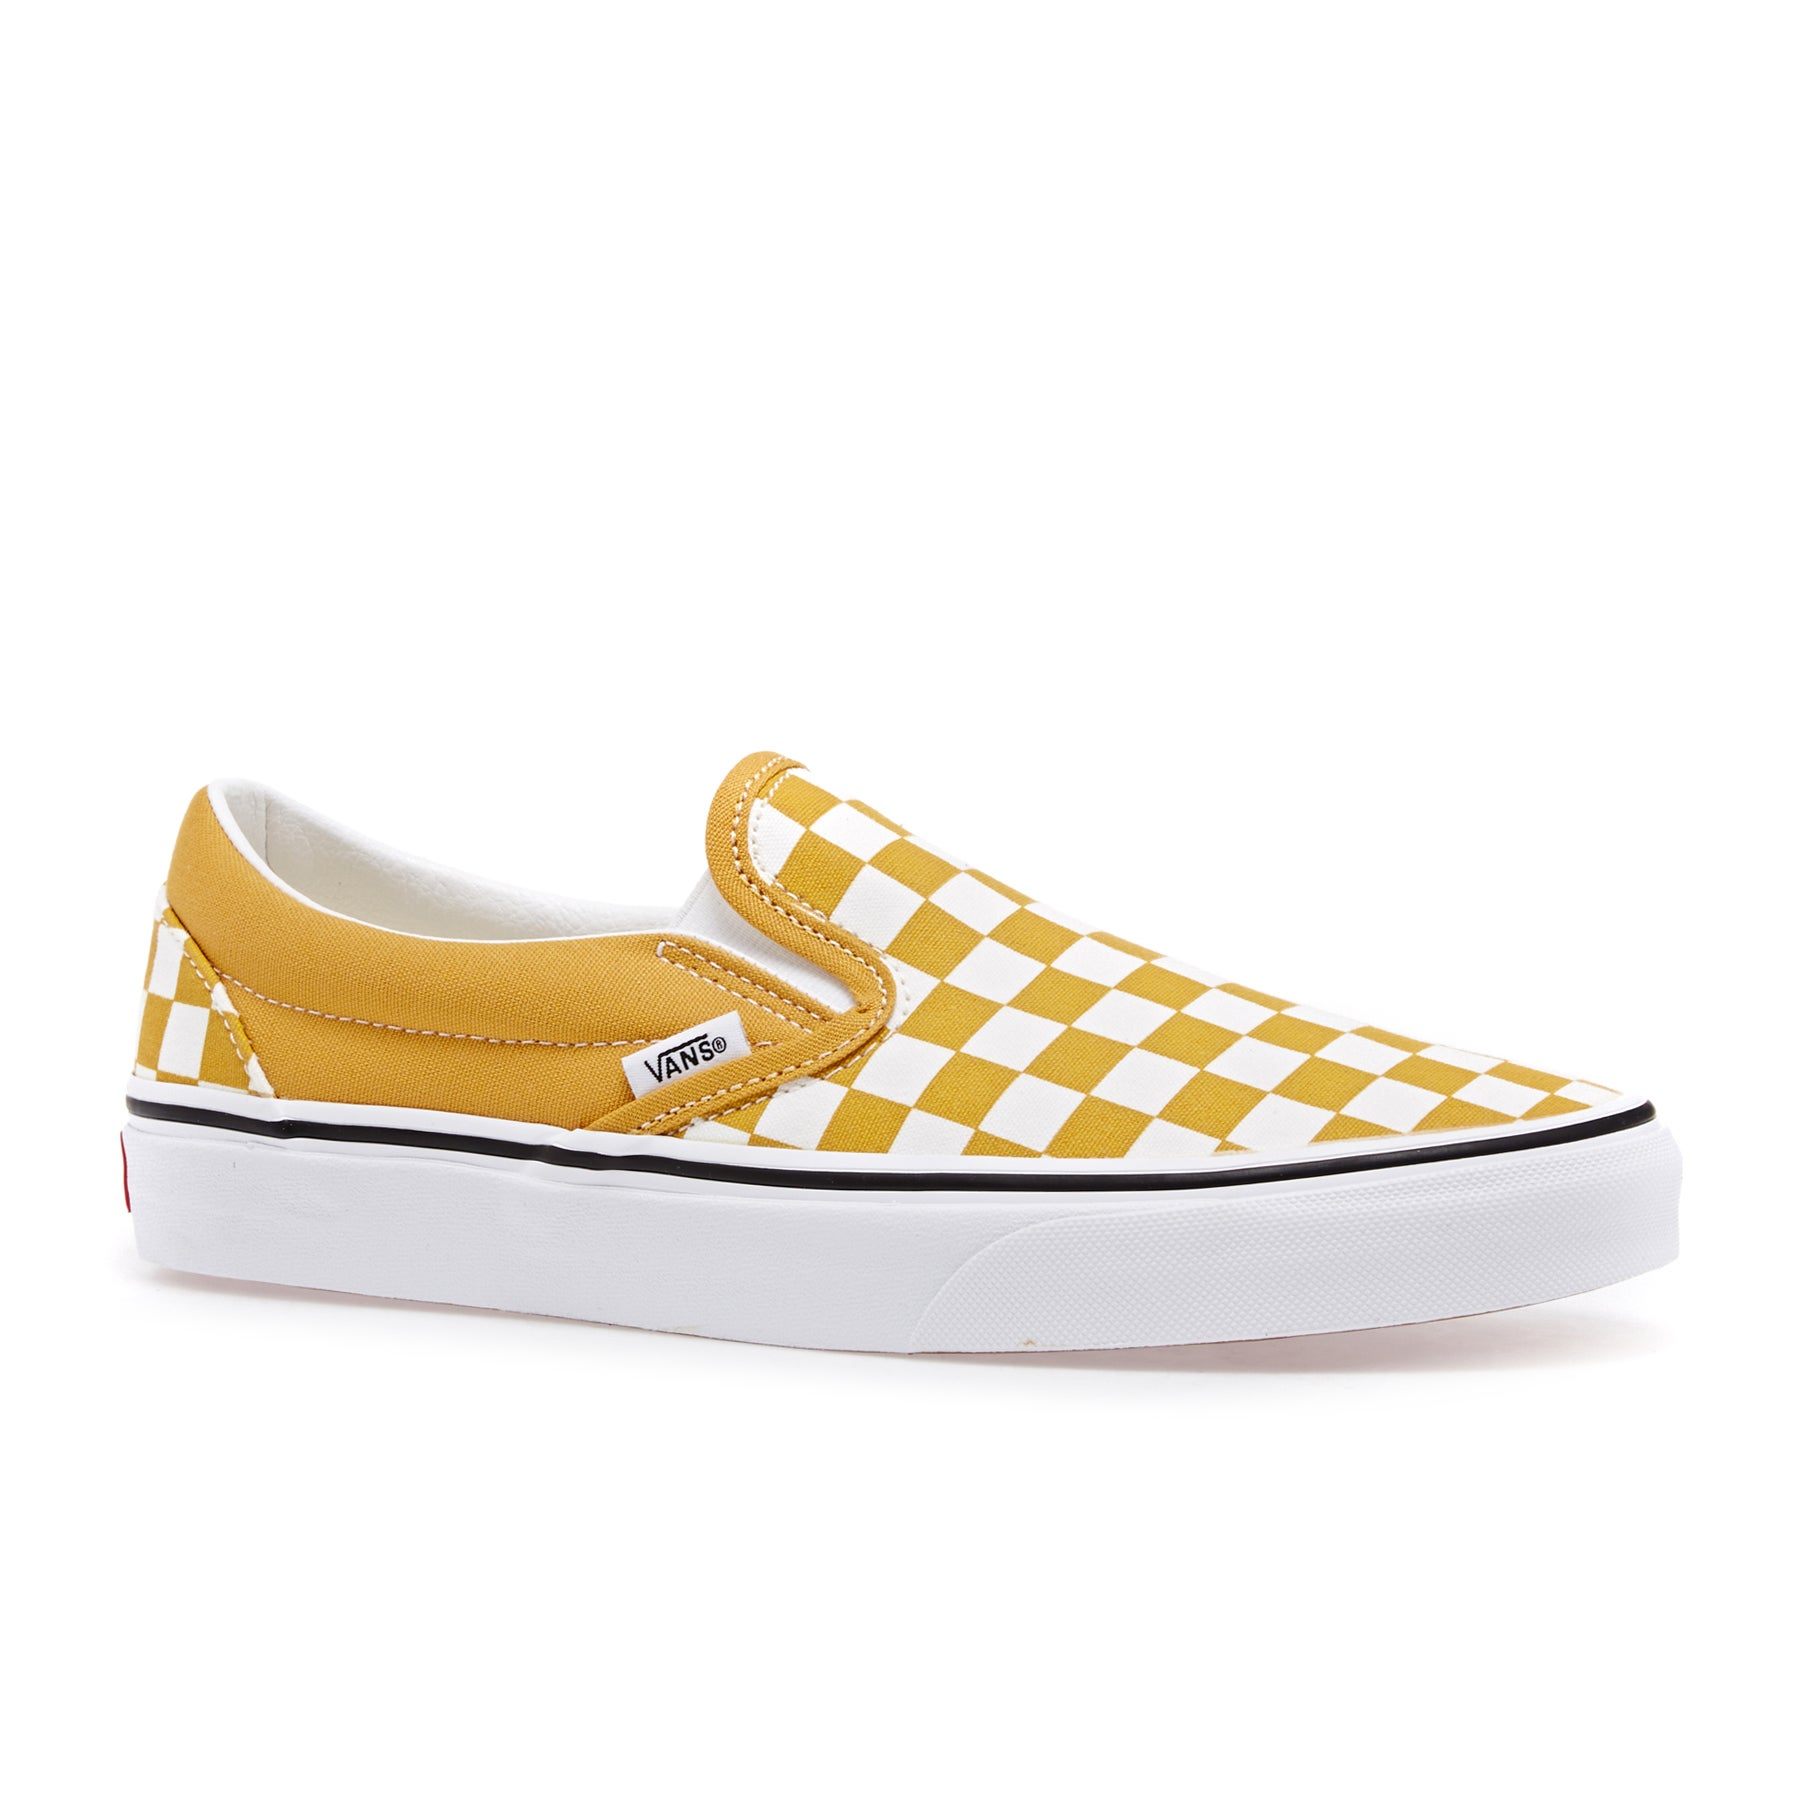 Dress Shoes Vans Authentic Classic - Checkerboard   Yolk Yellow True White